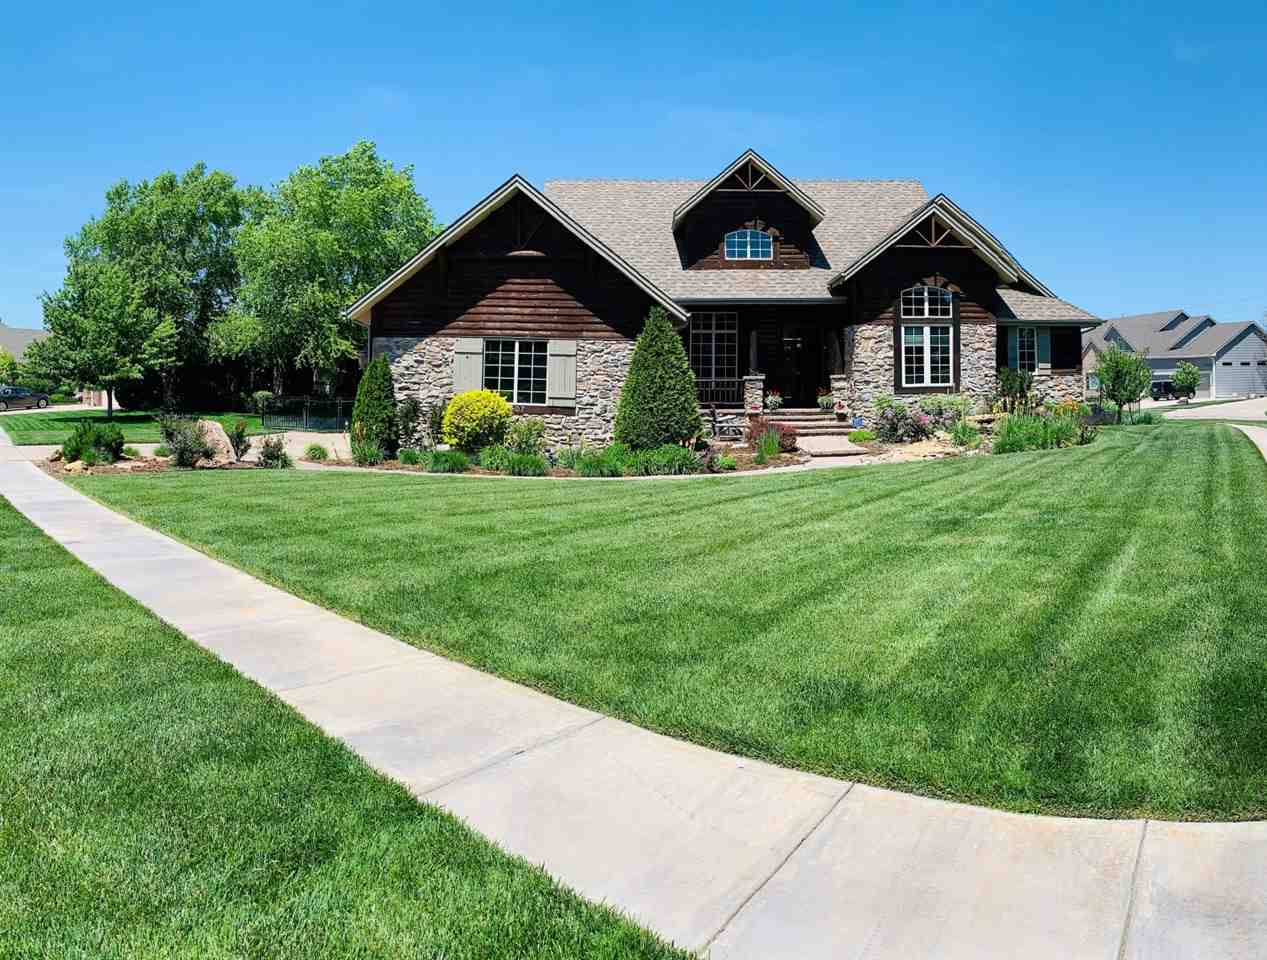 One of a kind 5 Bedroom, 3 Bath Montana Western Ranch style home that was built with ICF (Insulated